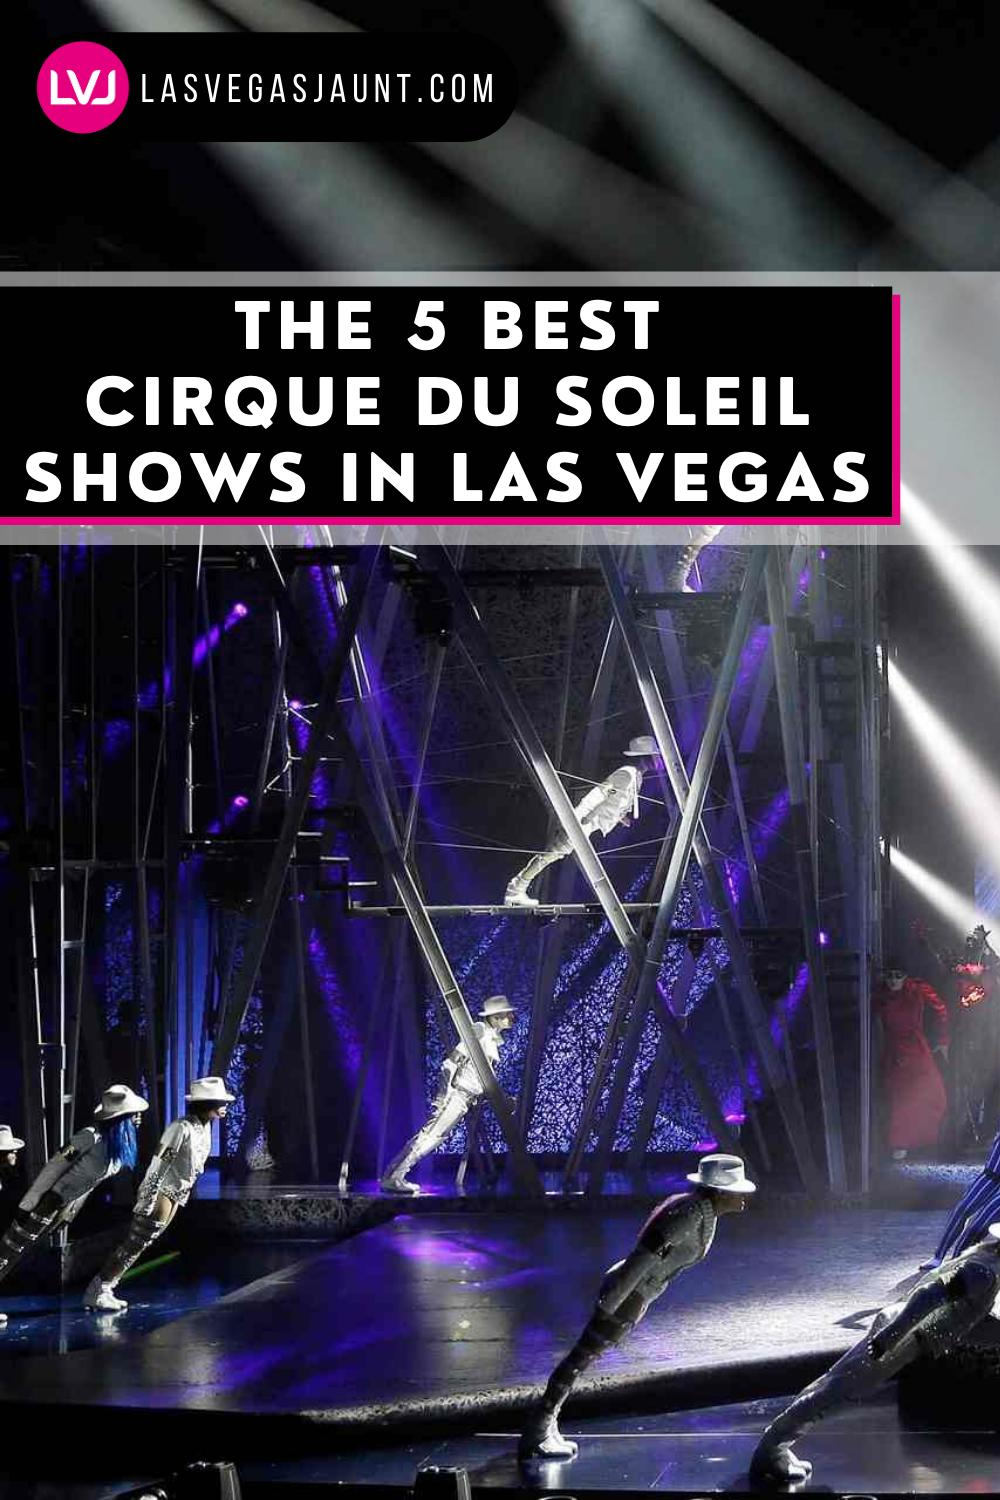 The 5 Best Cirque du Soleil Shows in Las Vegas